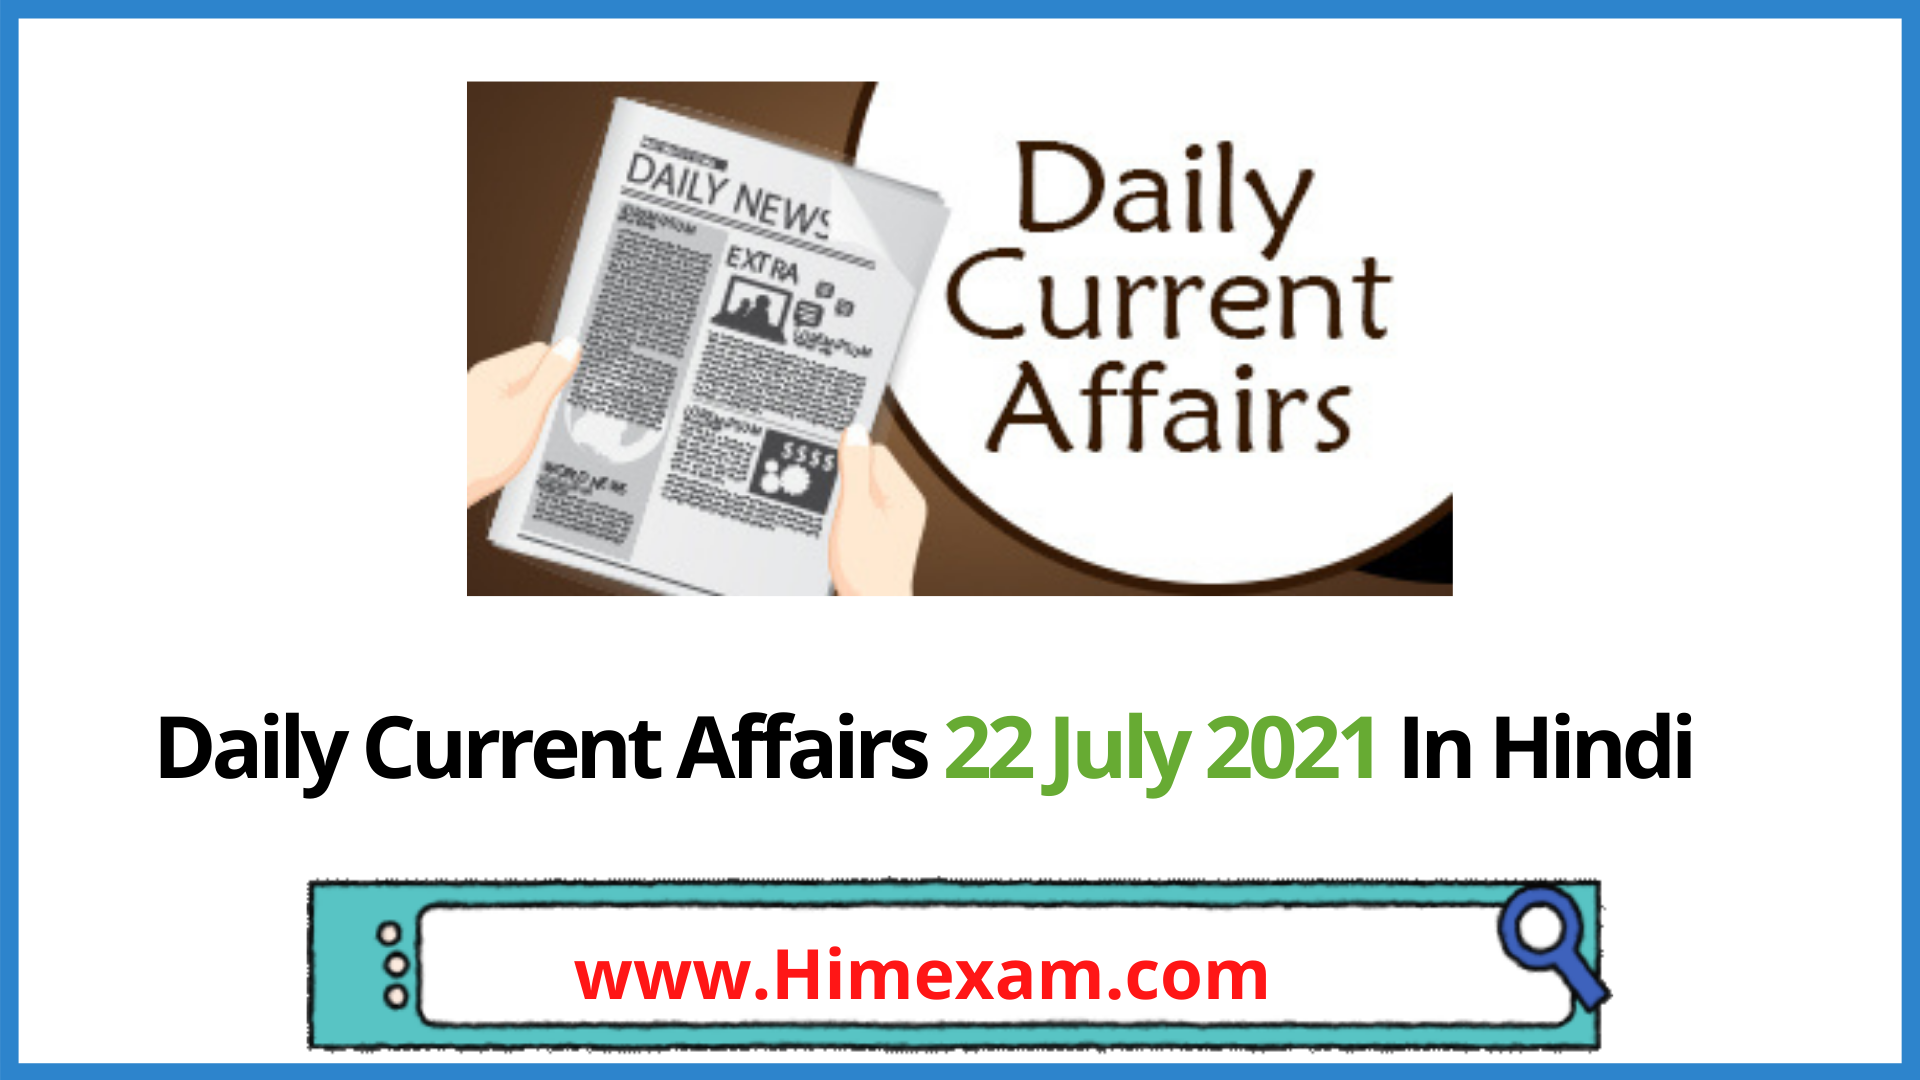 Daily Current Affairs 22 July 2021 In Hindi